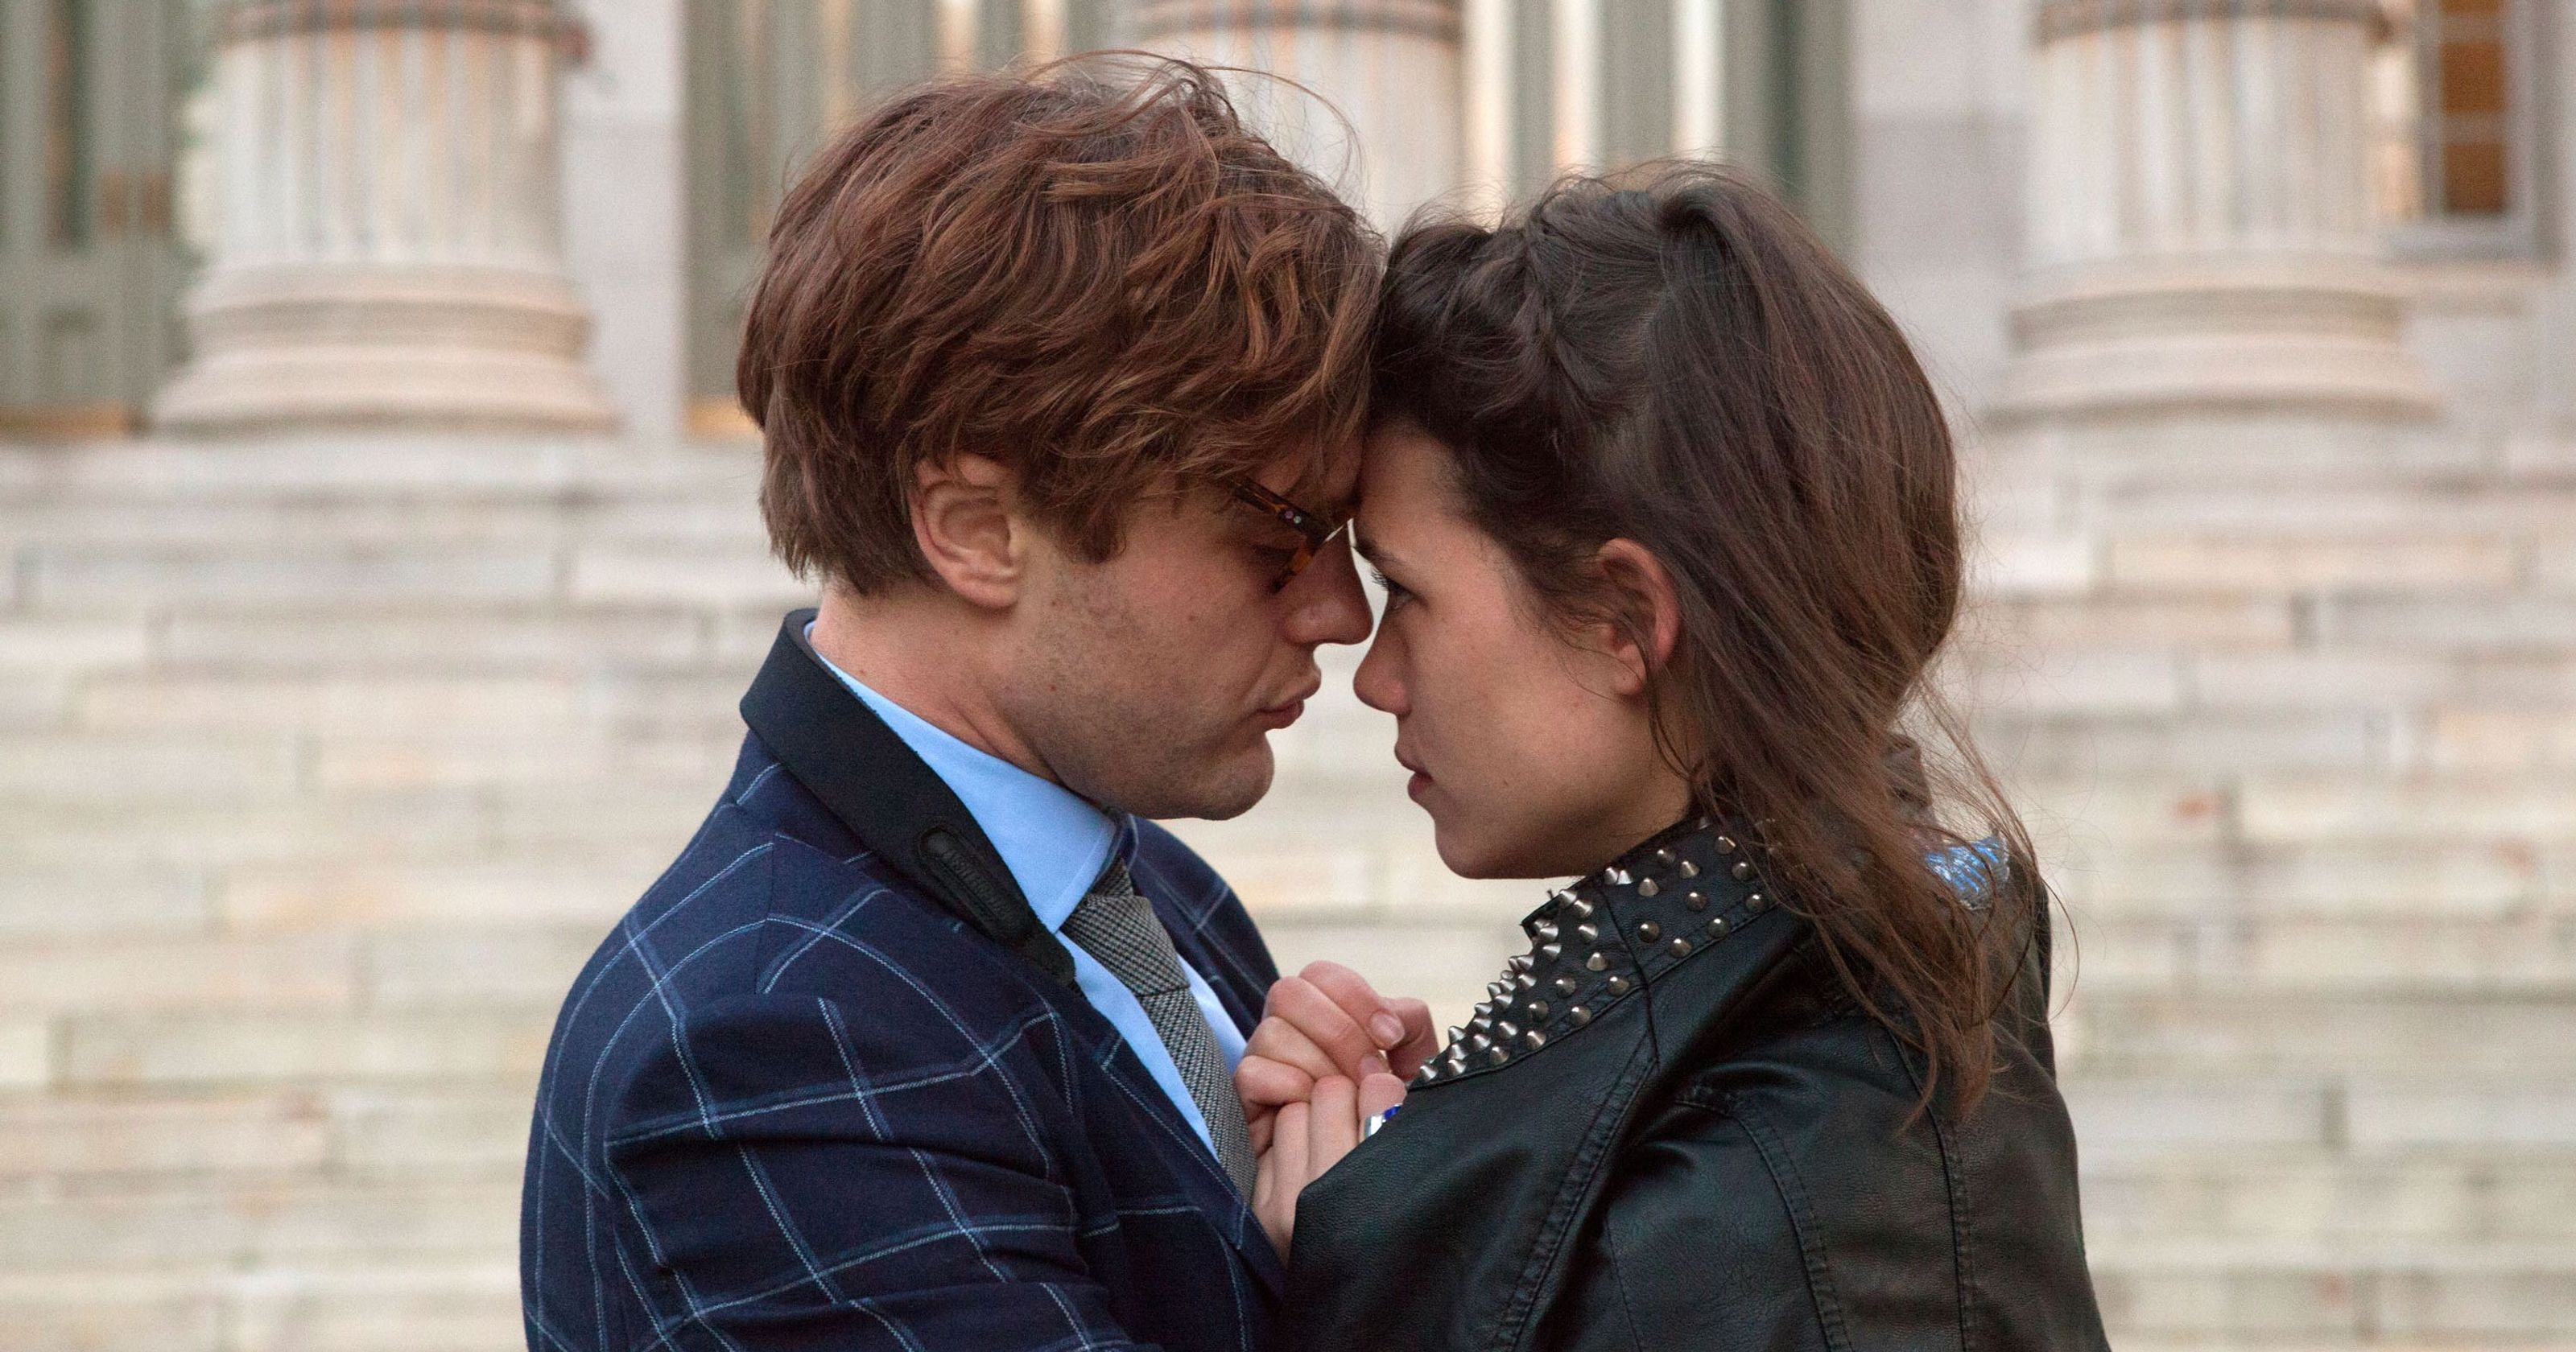 Michael Pitt and Astrid Berges-Frisbey in I Origins (2014)